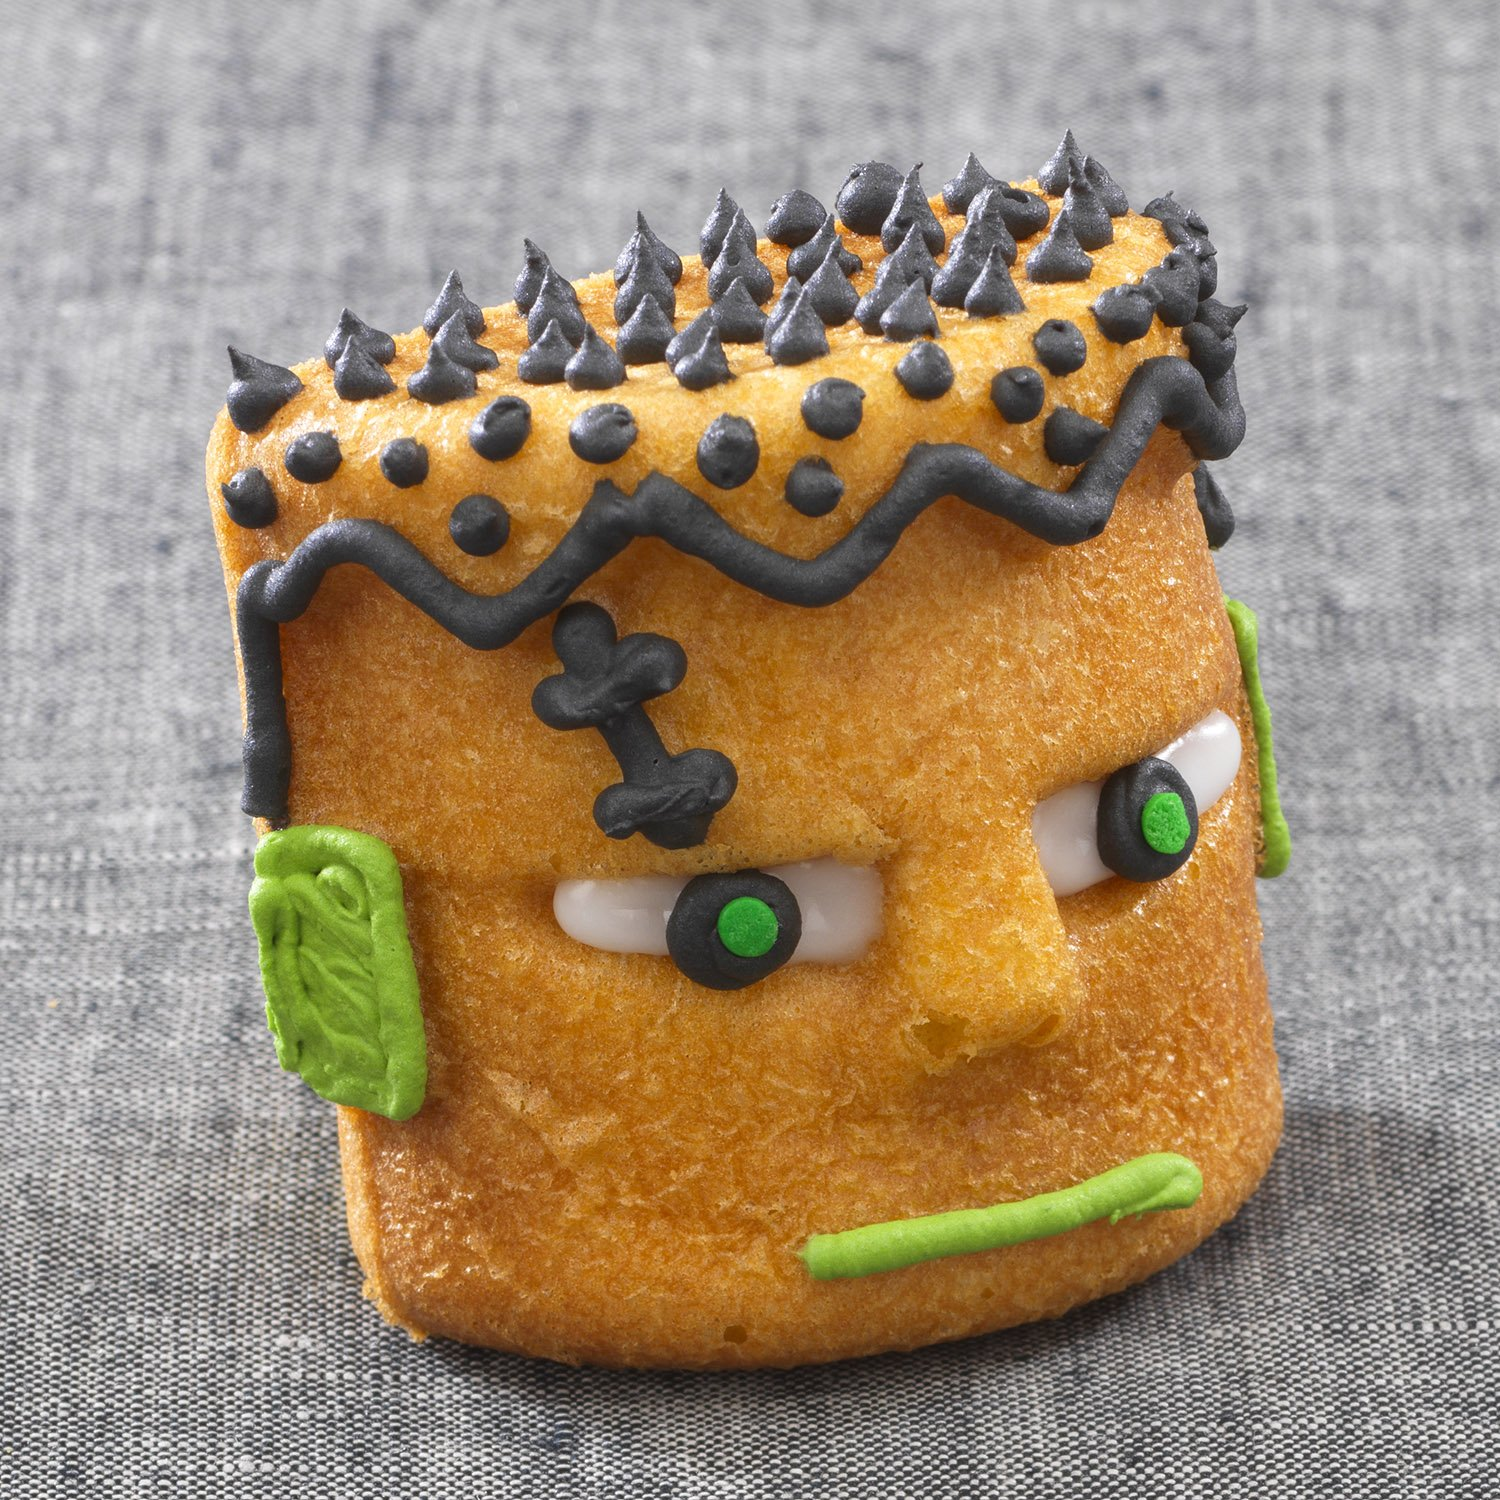 Sweet Creations 4-Cup 3D Halloween Monster Cake Pan, Gray